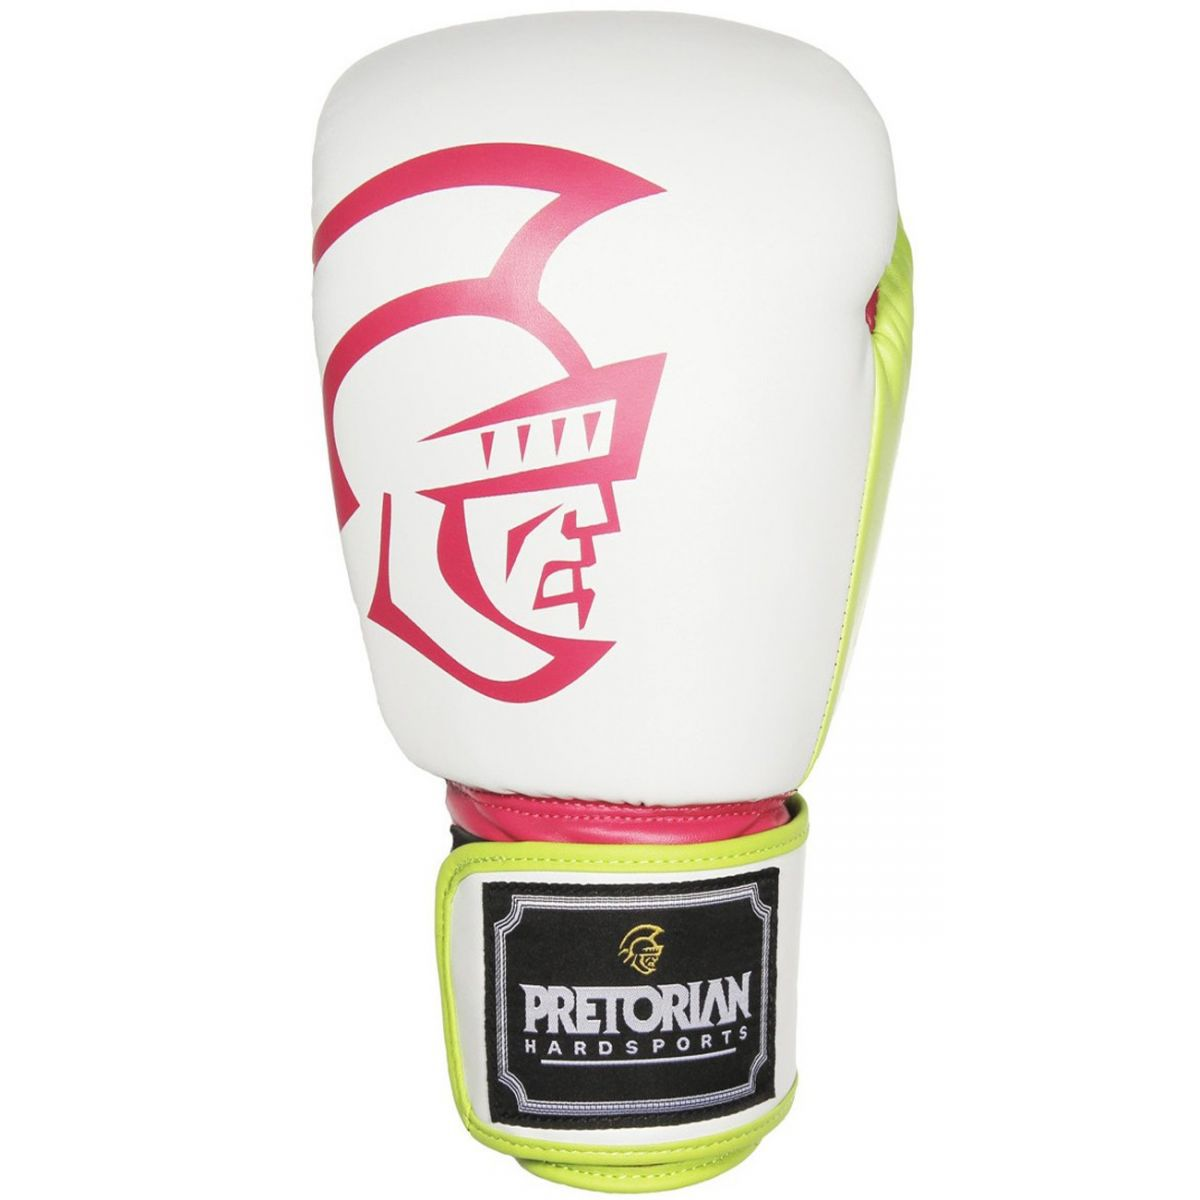 Luvas Boxe / Muay Thai - Training Series - Rosa/Branco/Verde- Pretorian - 10/12/14/16 OZ .